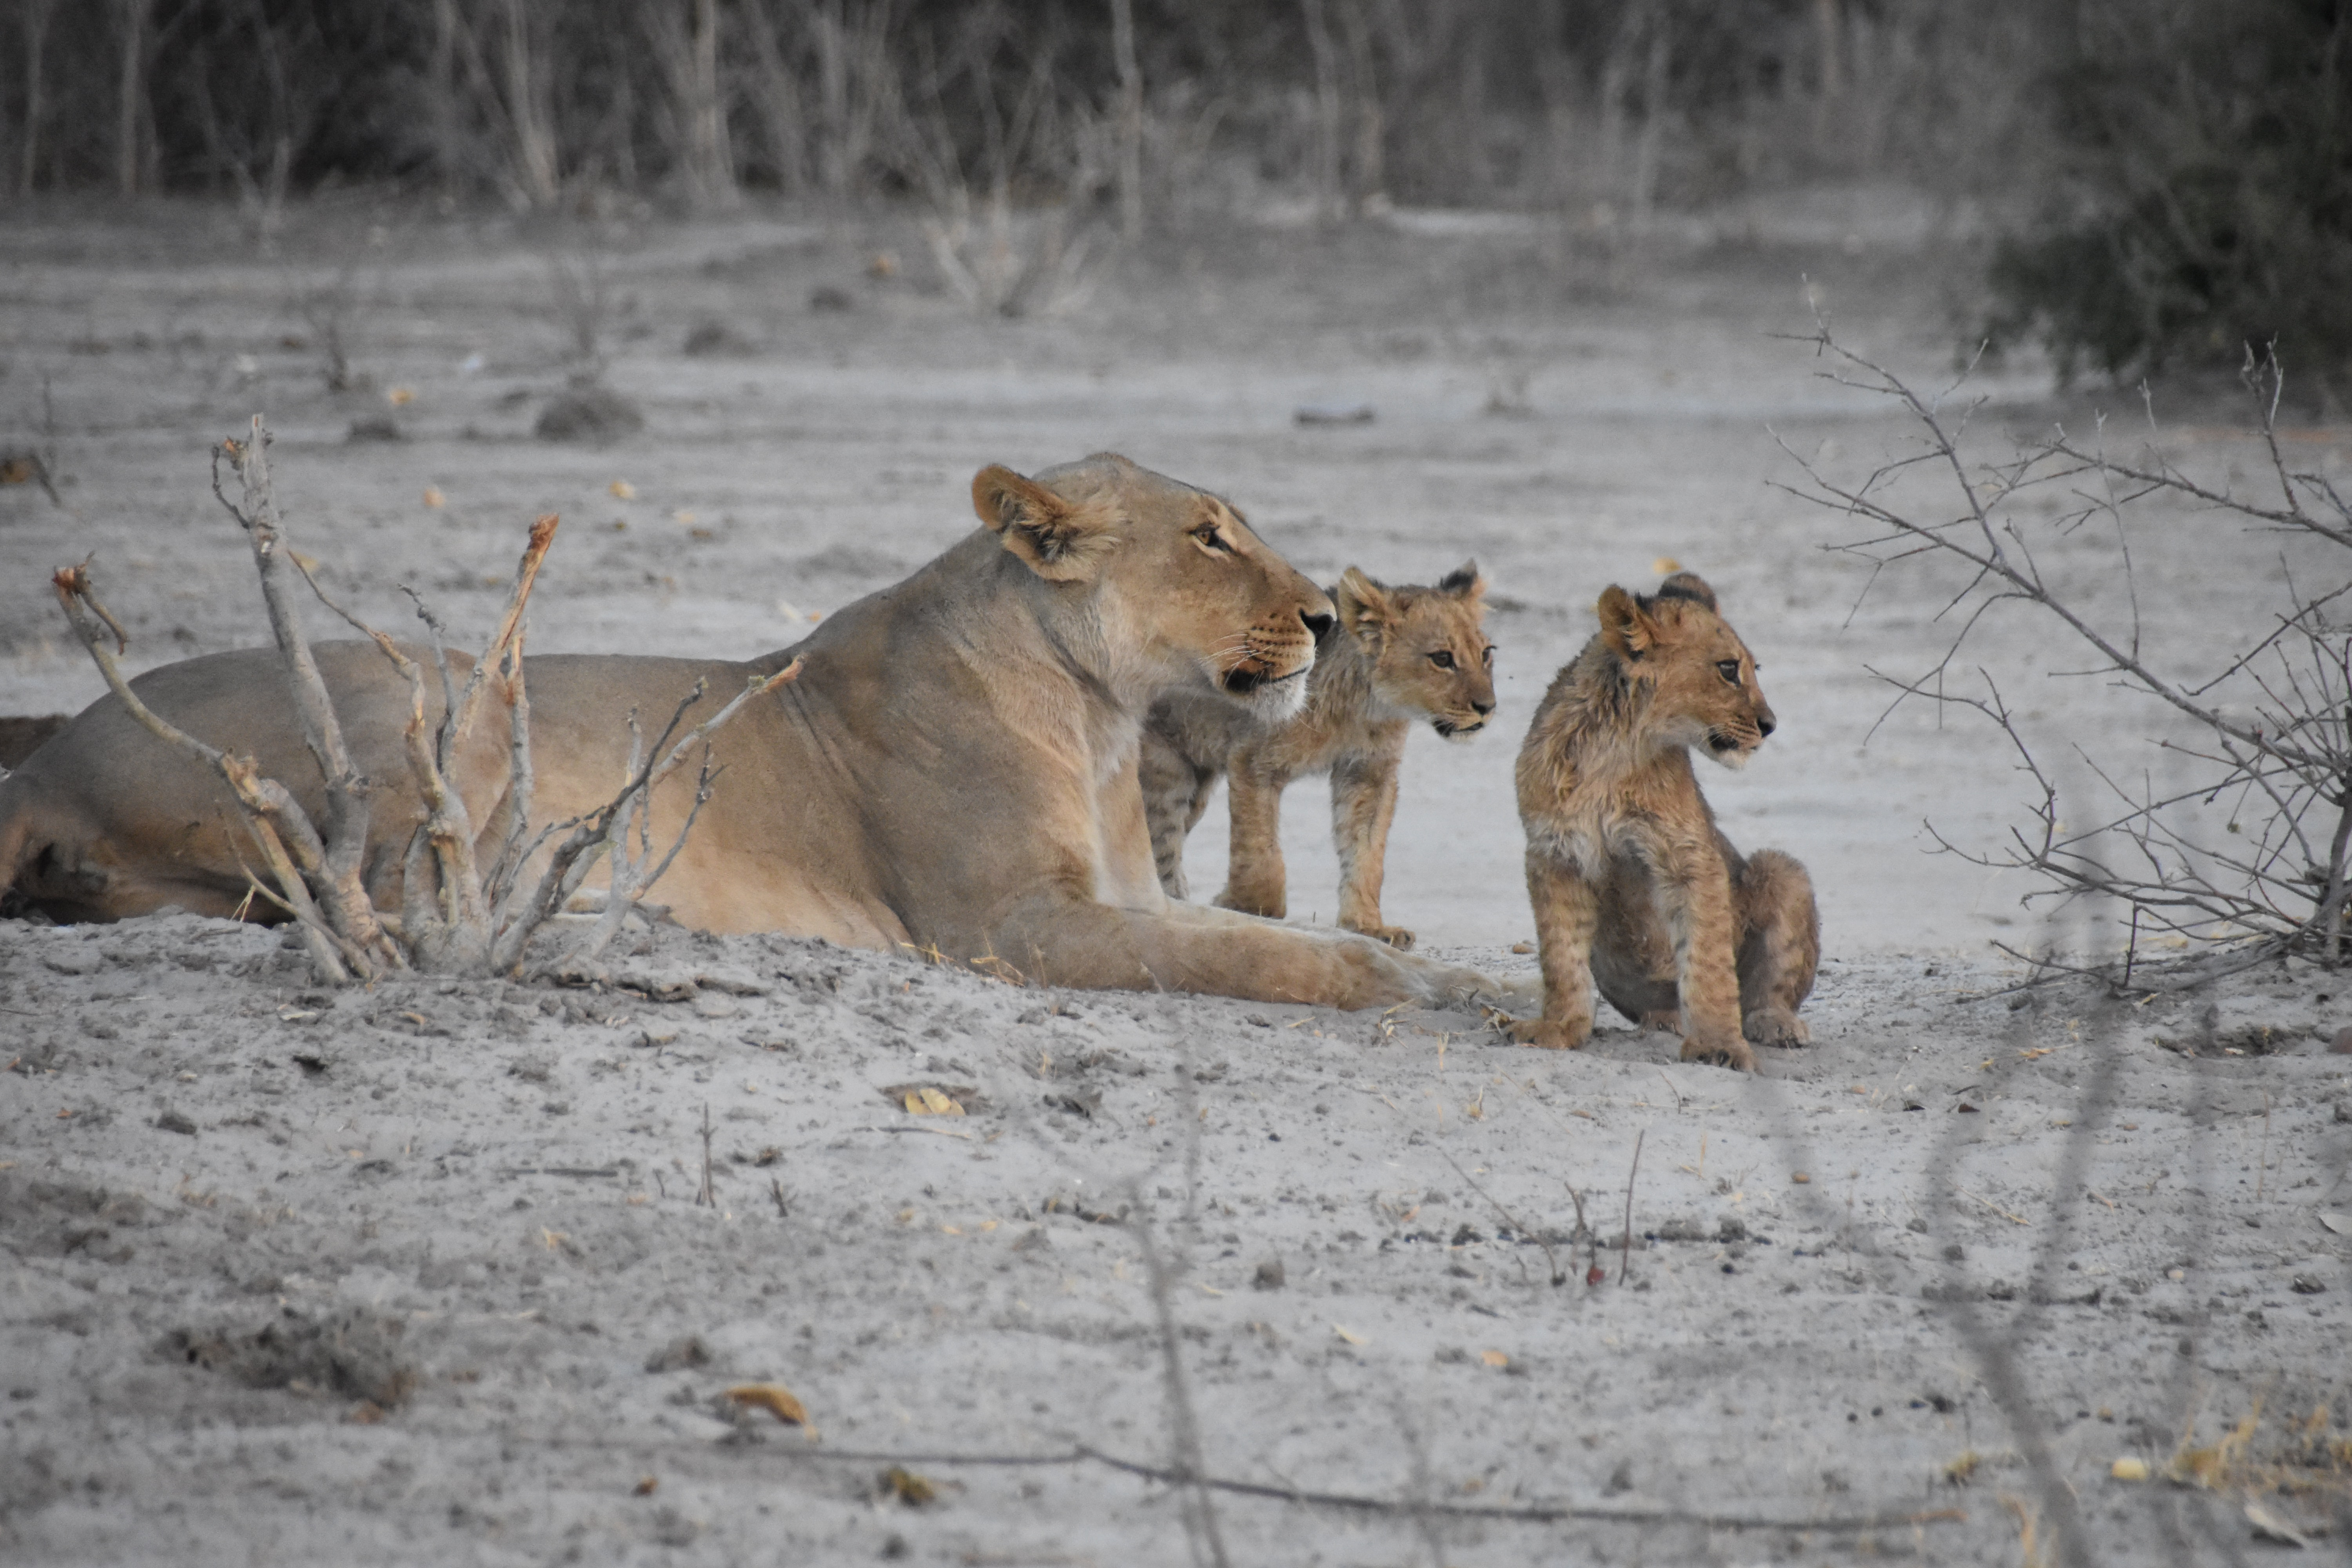 139370 download wallpaper Animals, Lioness, Lion Cubs, Mother, Cubs, Young, Lions screensavers and pictures for free